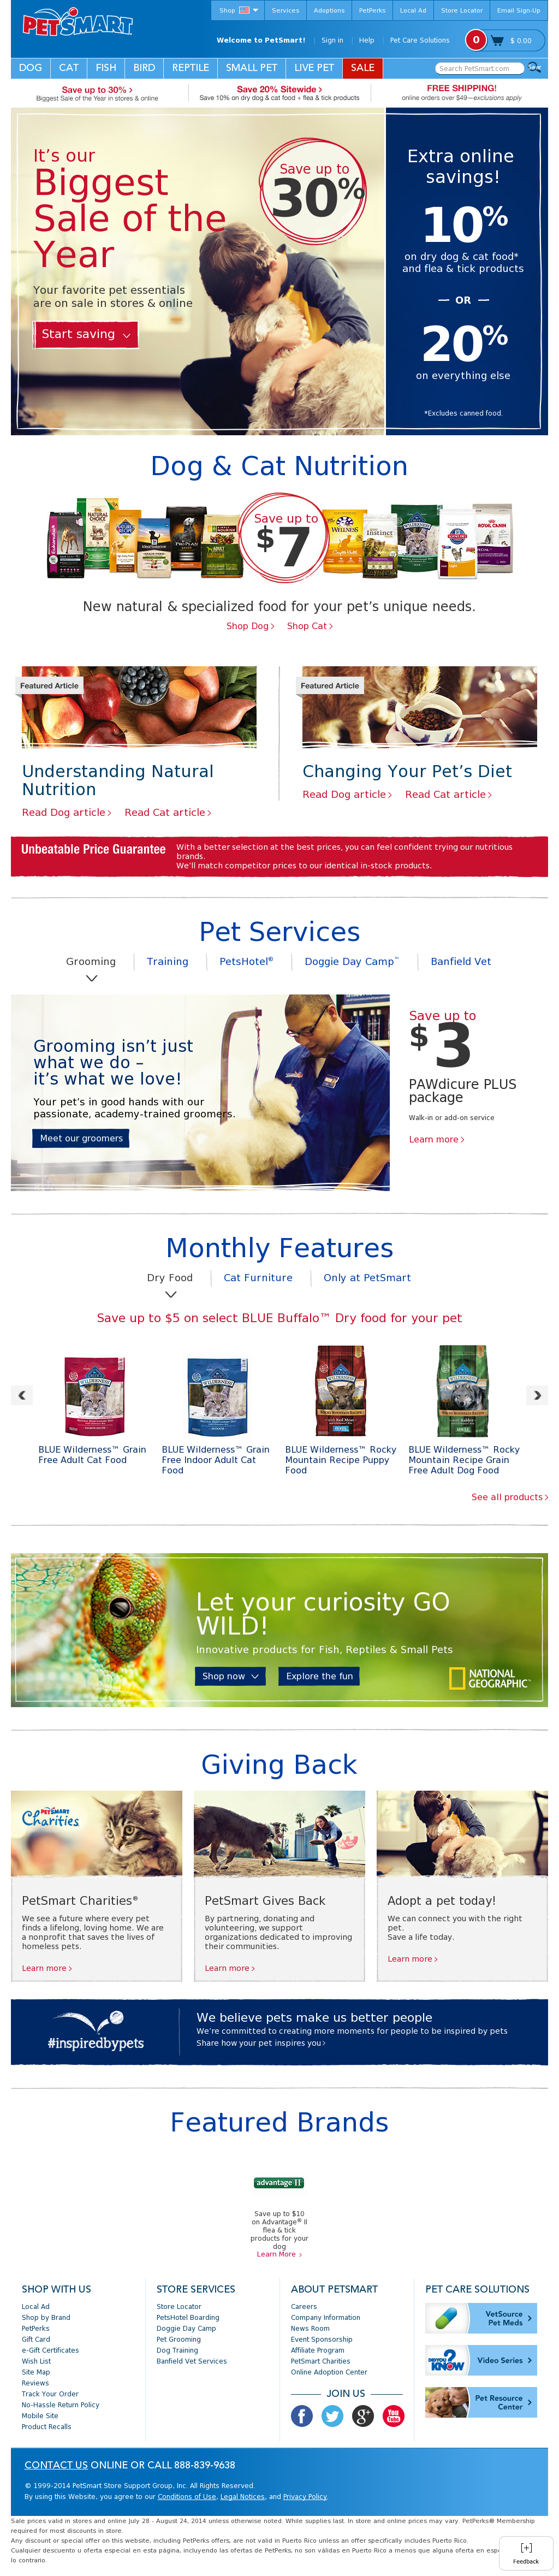 PetSmart Competitors, Revenue and Employees - Owler Company